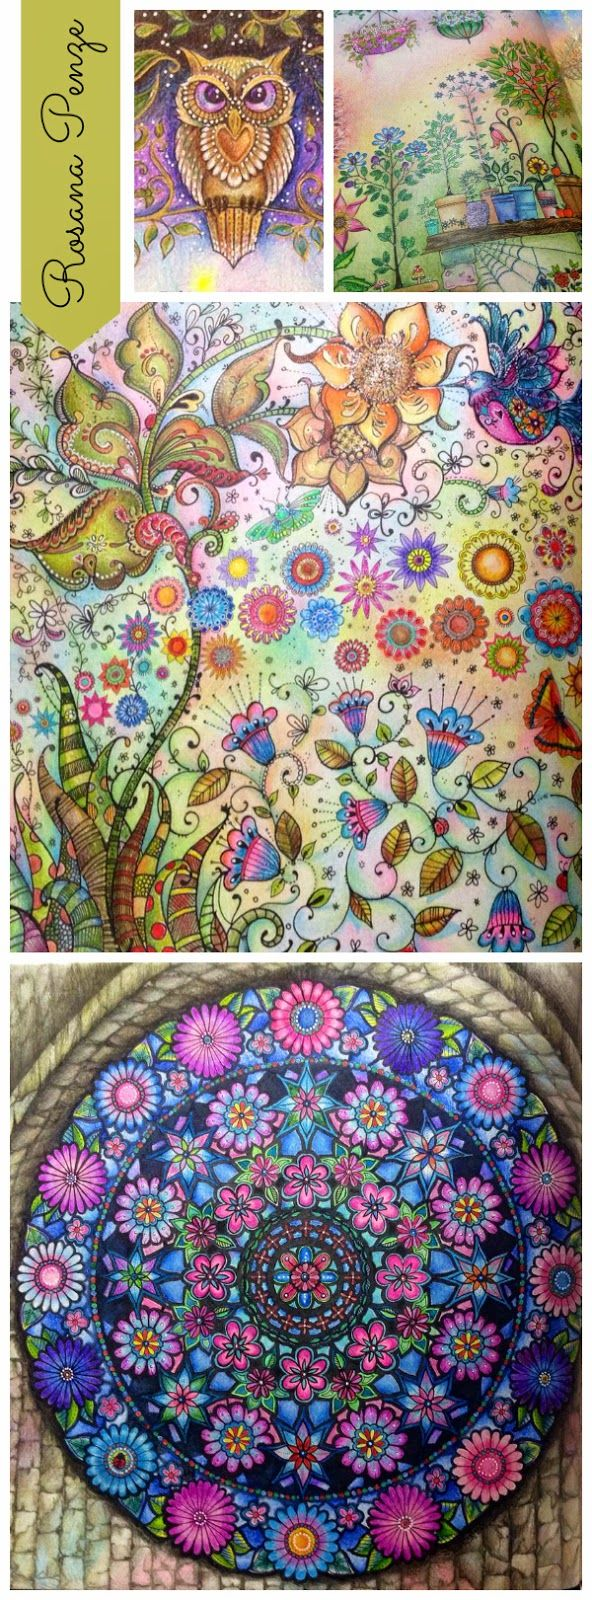 Zendoodle coloring enchanting gardens - Atelier Gina Pafiadache Tips For Coloring Books Secret Garden And Enchanted Forest